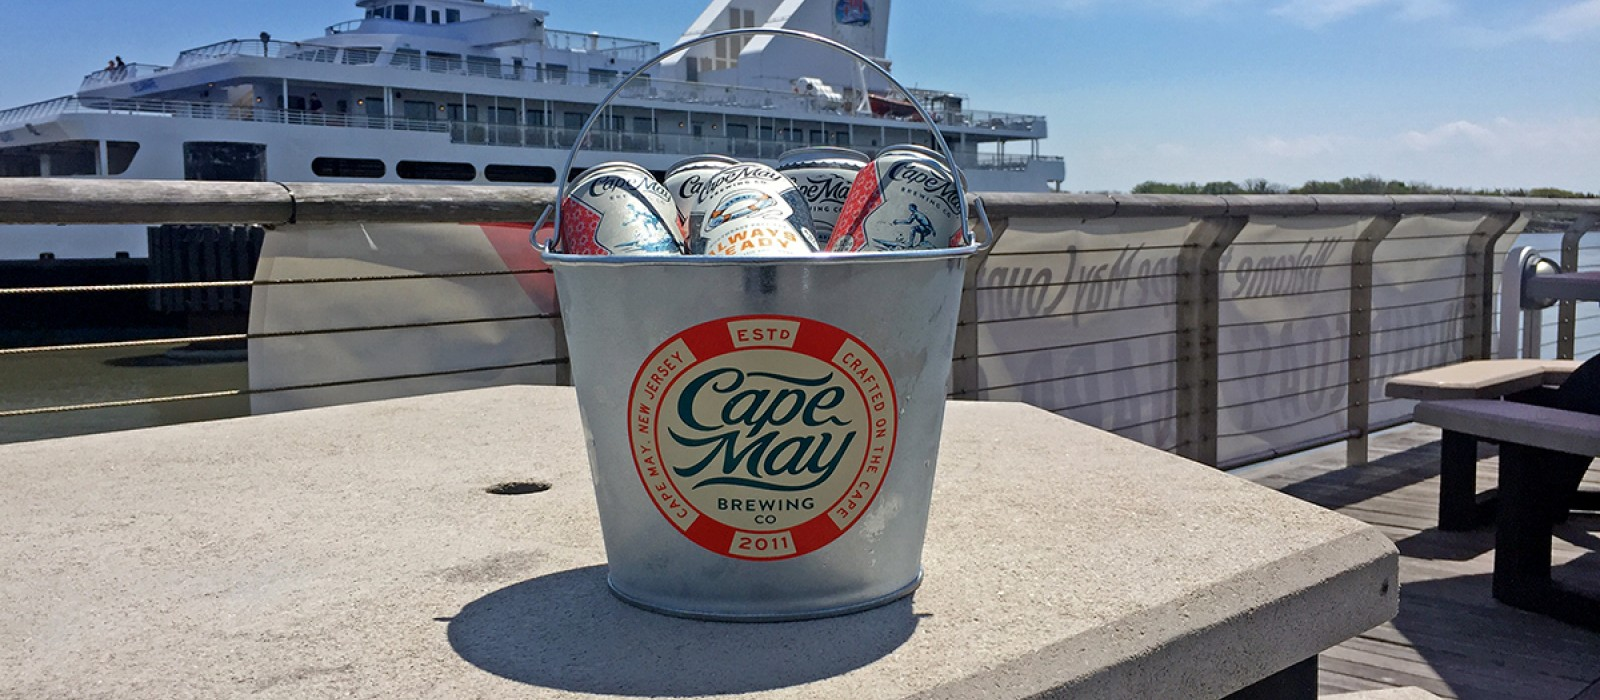 Bucket of local craft beer at On the Rocks Dockside Grill, North Cape May, NJ